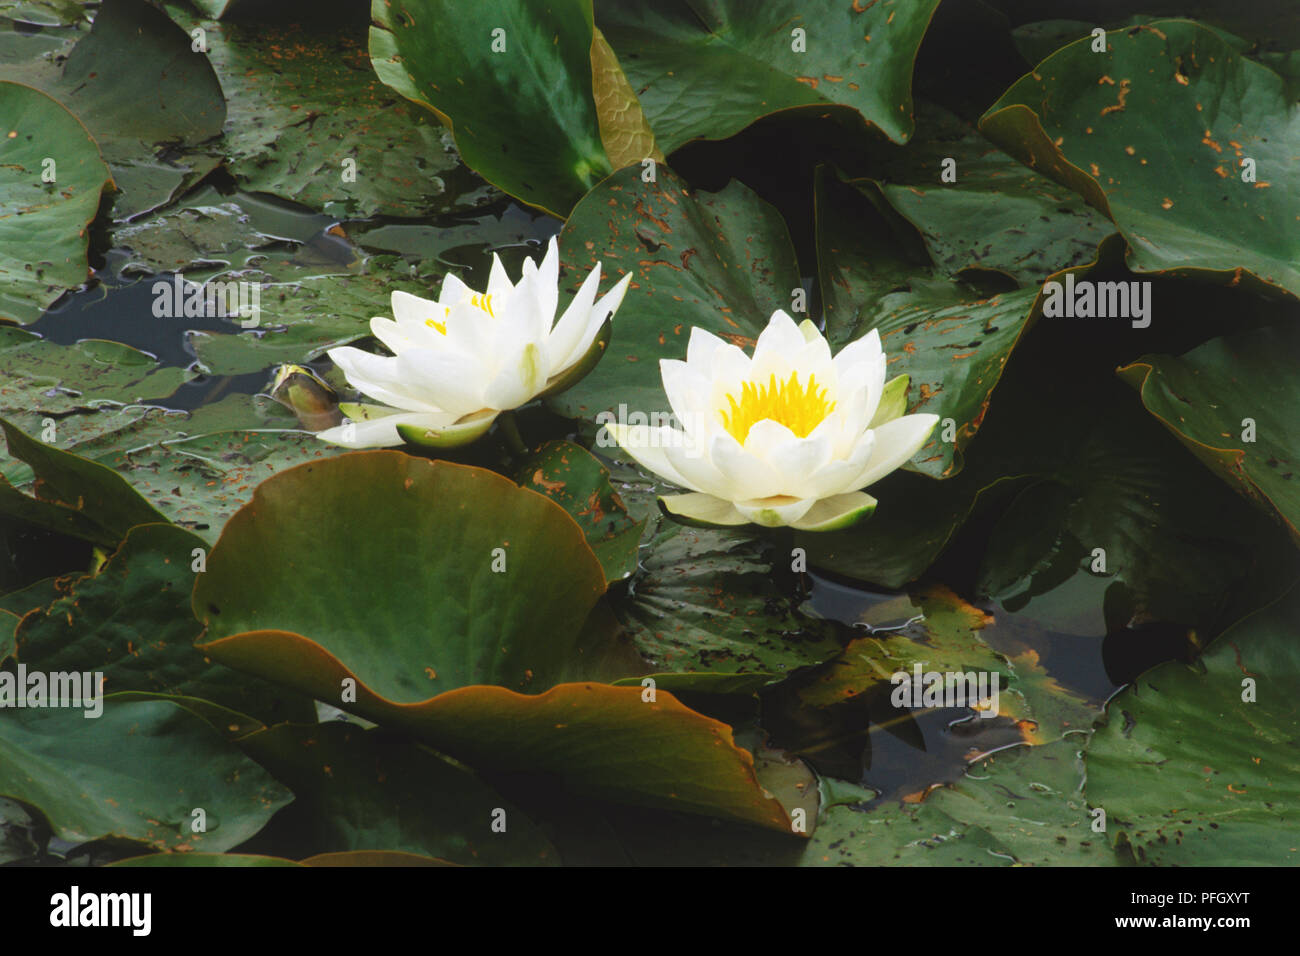 July birth flower stock photos july birth flower stock images alamy two white water lilies stock image izmirmasajfo